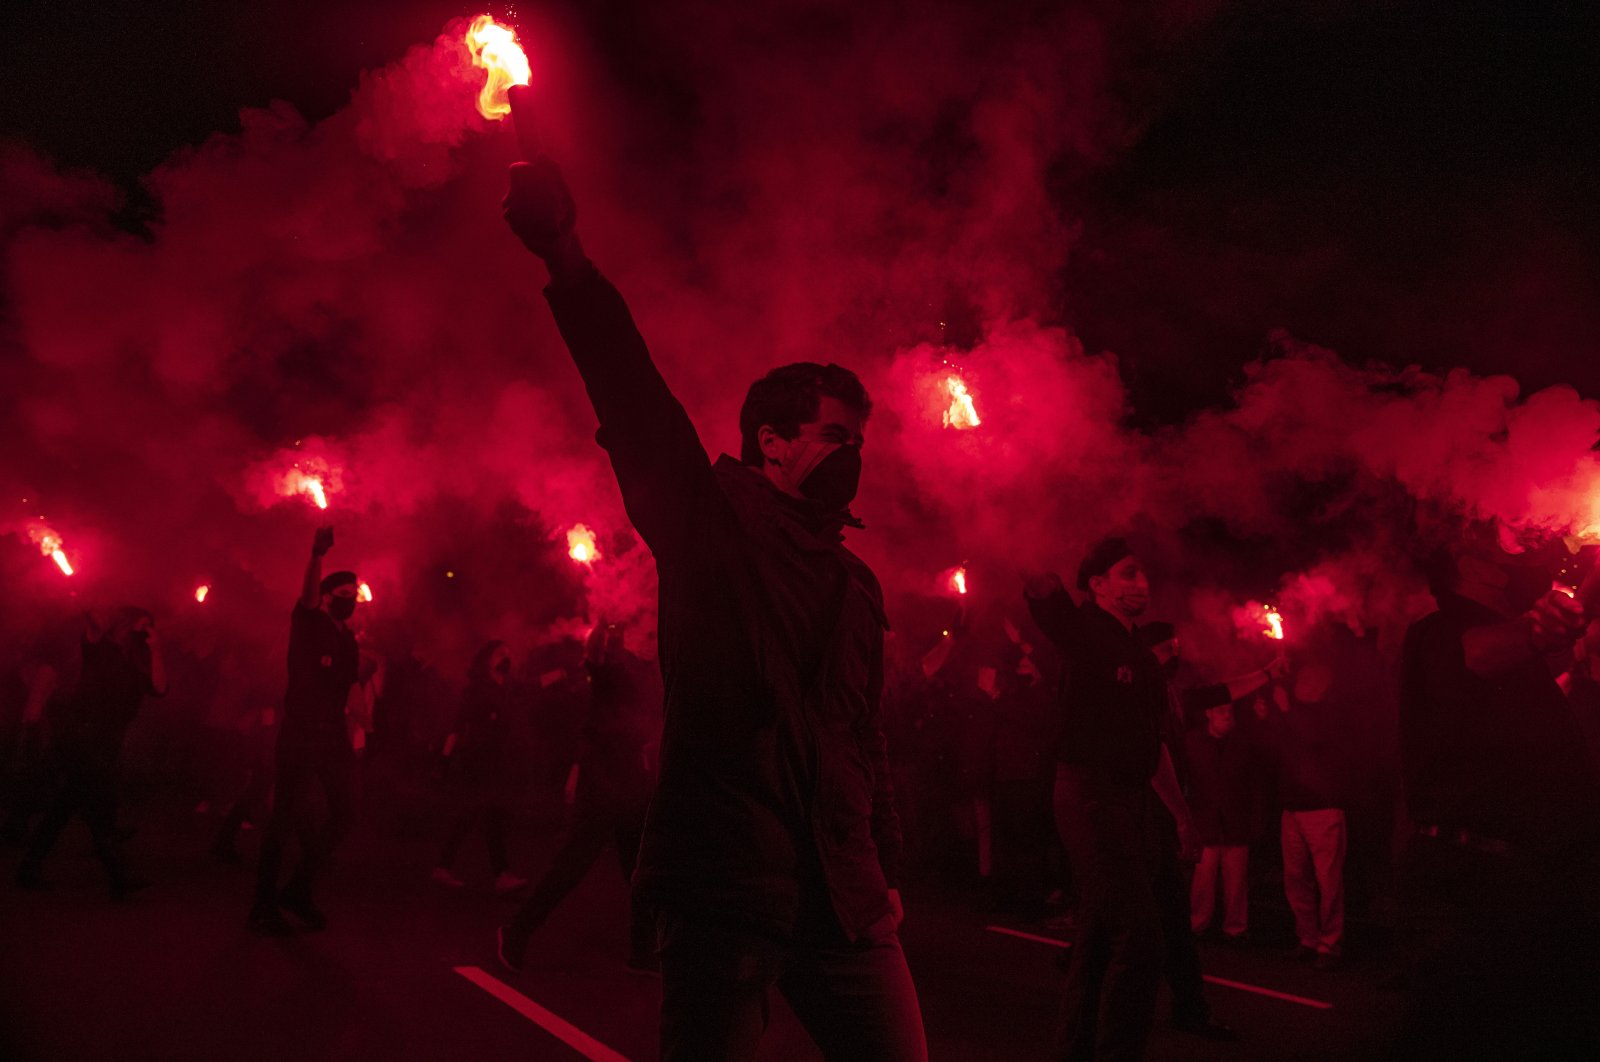 Far-right activists burn flares during a rally marking the anniversary of the death of Jose Antonio Primo de Rivera, founder of the Spanish fascist party, the Falange, in Madrid, Spain, Nov. 20, 2020. (AP Photo)